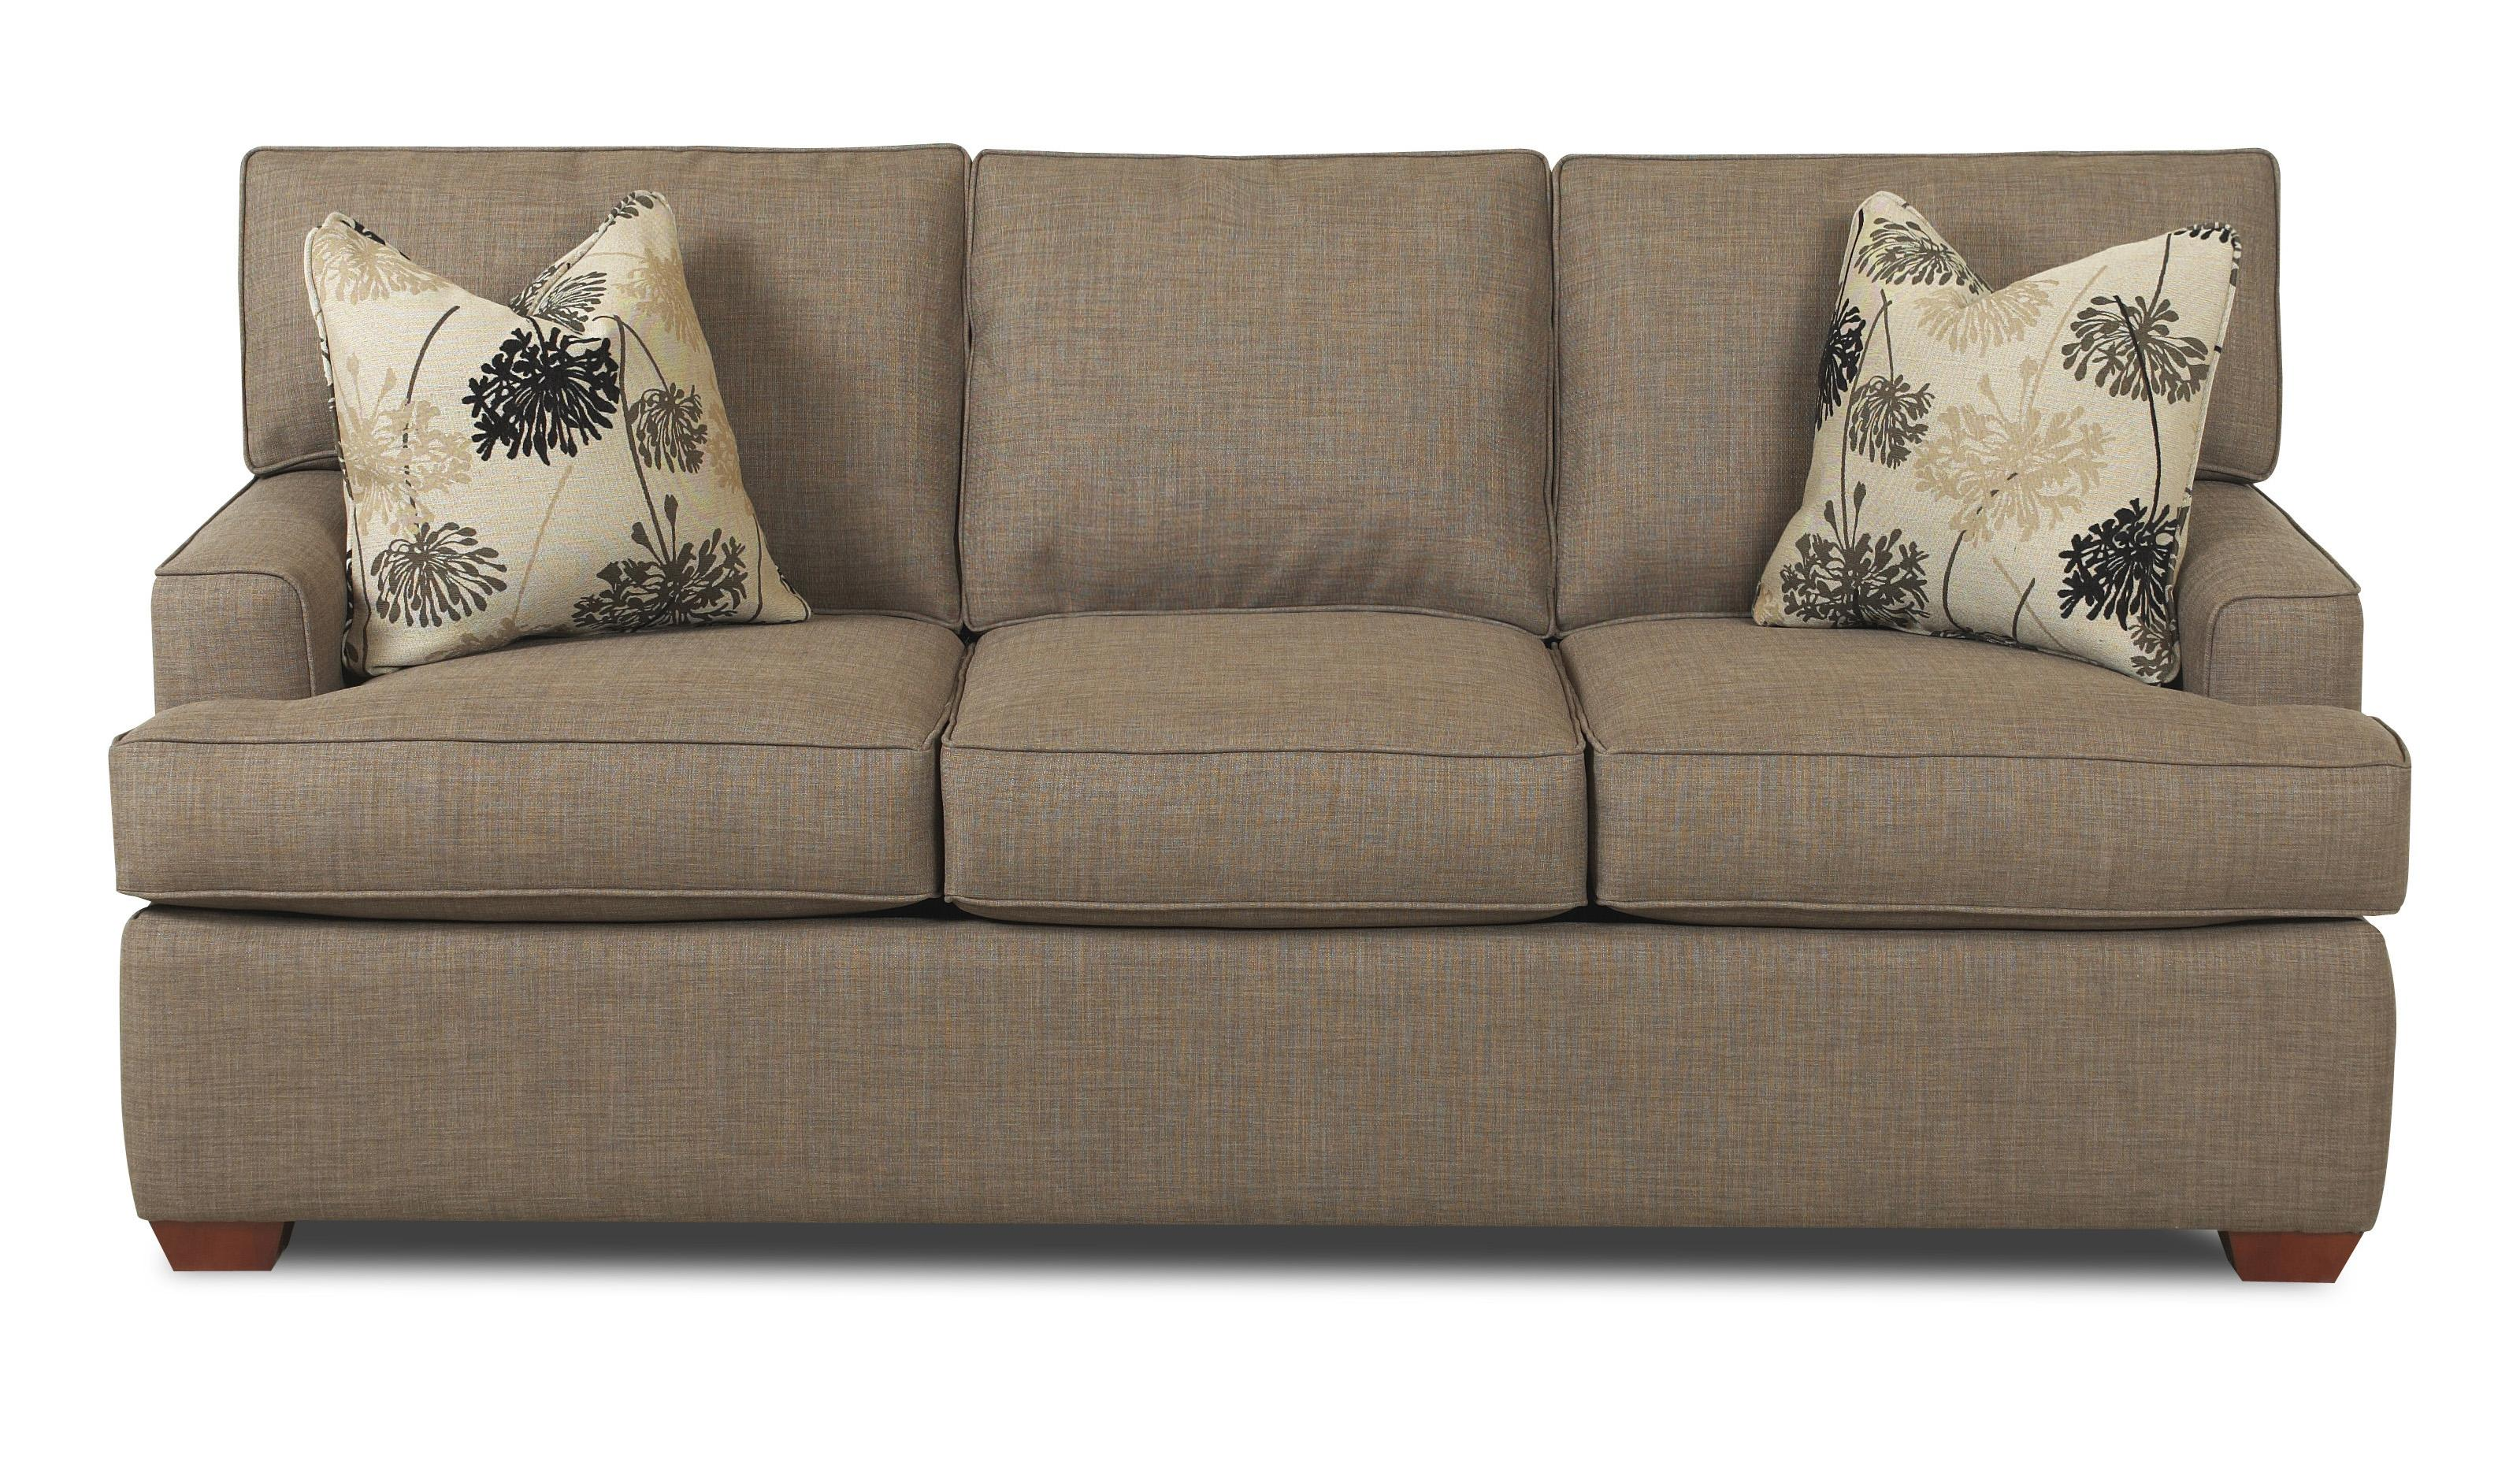 Pantego Air Dream Sleeper Sofa by Klaussner at H.L. Stephens